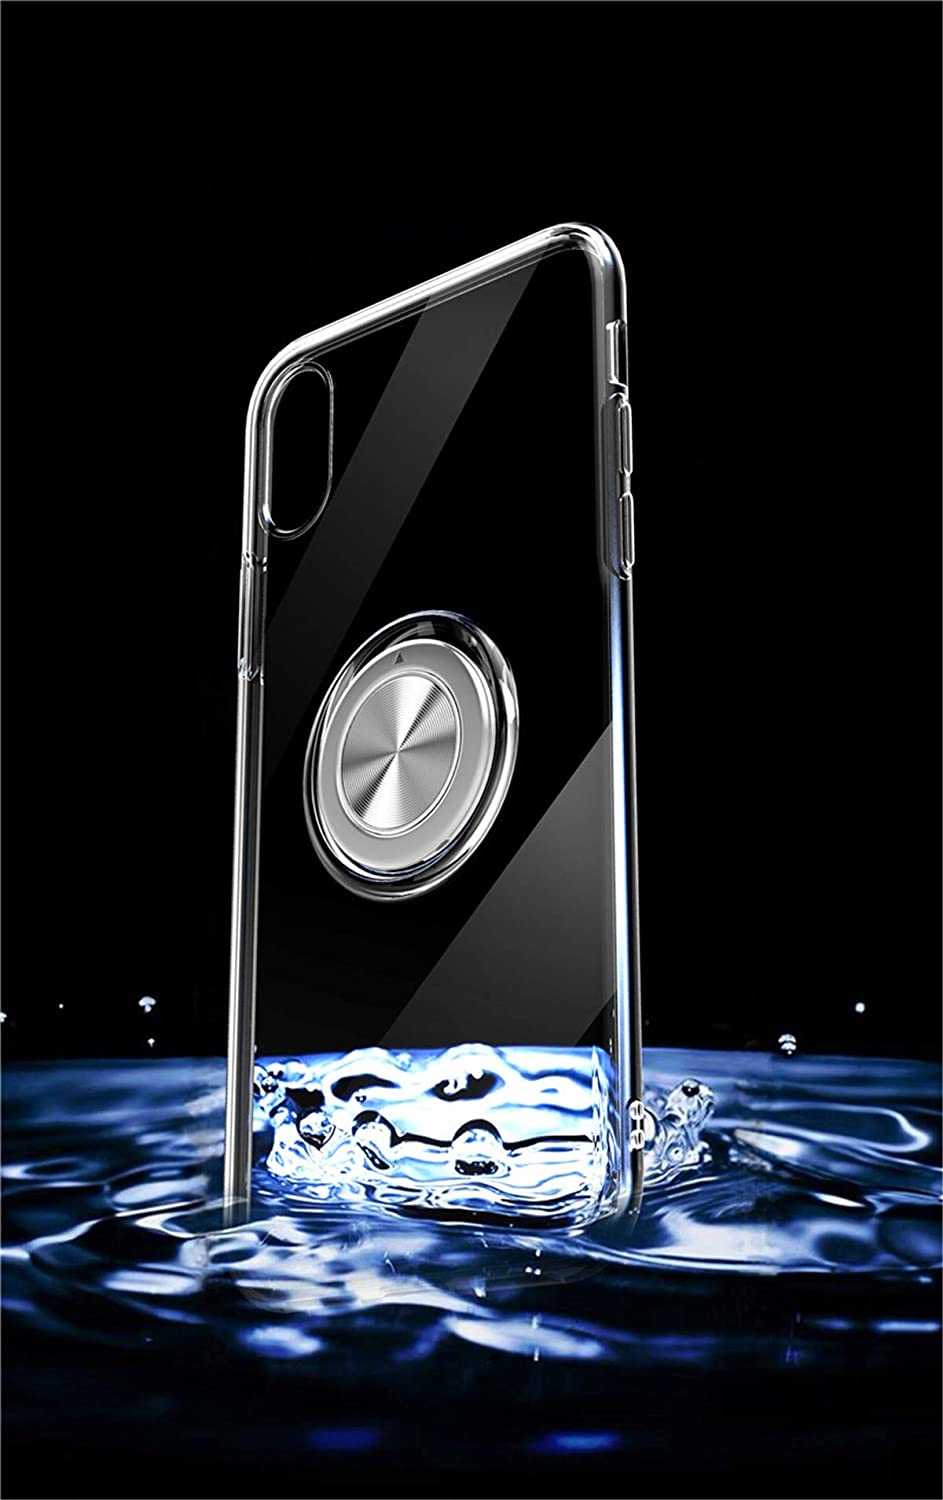 6.5 inch Shock Absorption Rouge, i11 Pro Max Housse Kickstand Ring /Étui en Silicone Slim Case Antichoc Cover Anti-Rayures Coque Compatible with iPhone 11 Pro Max